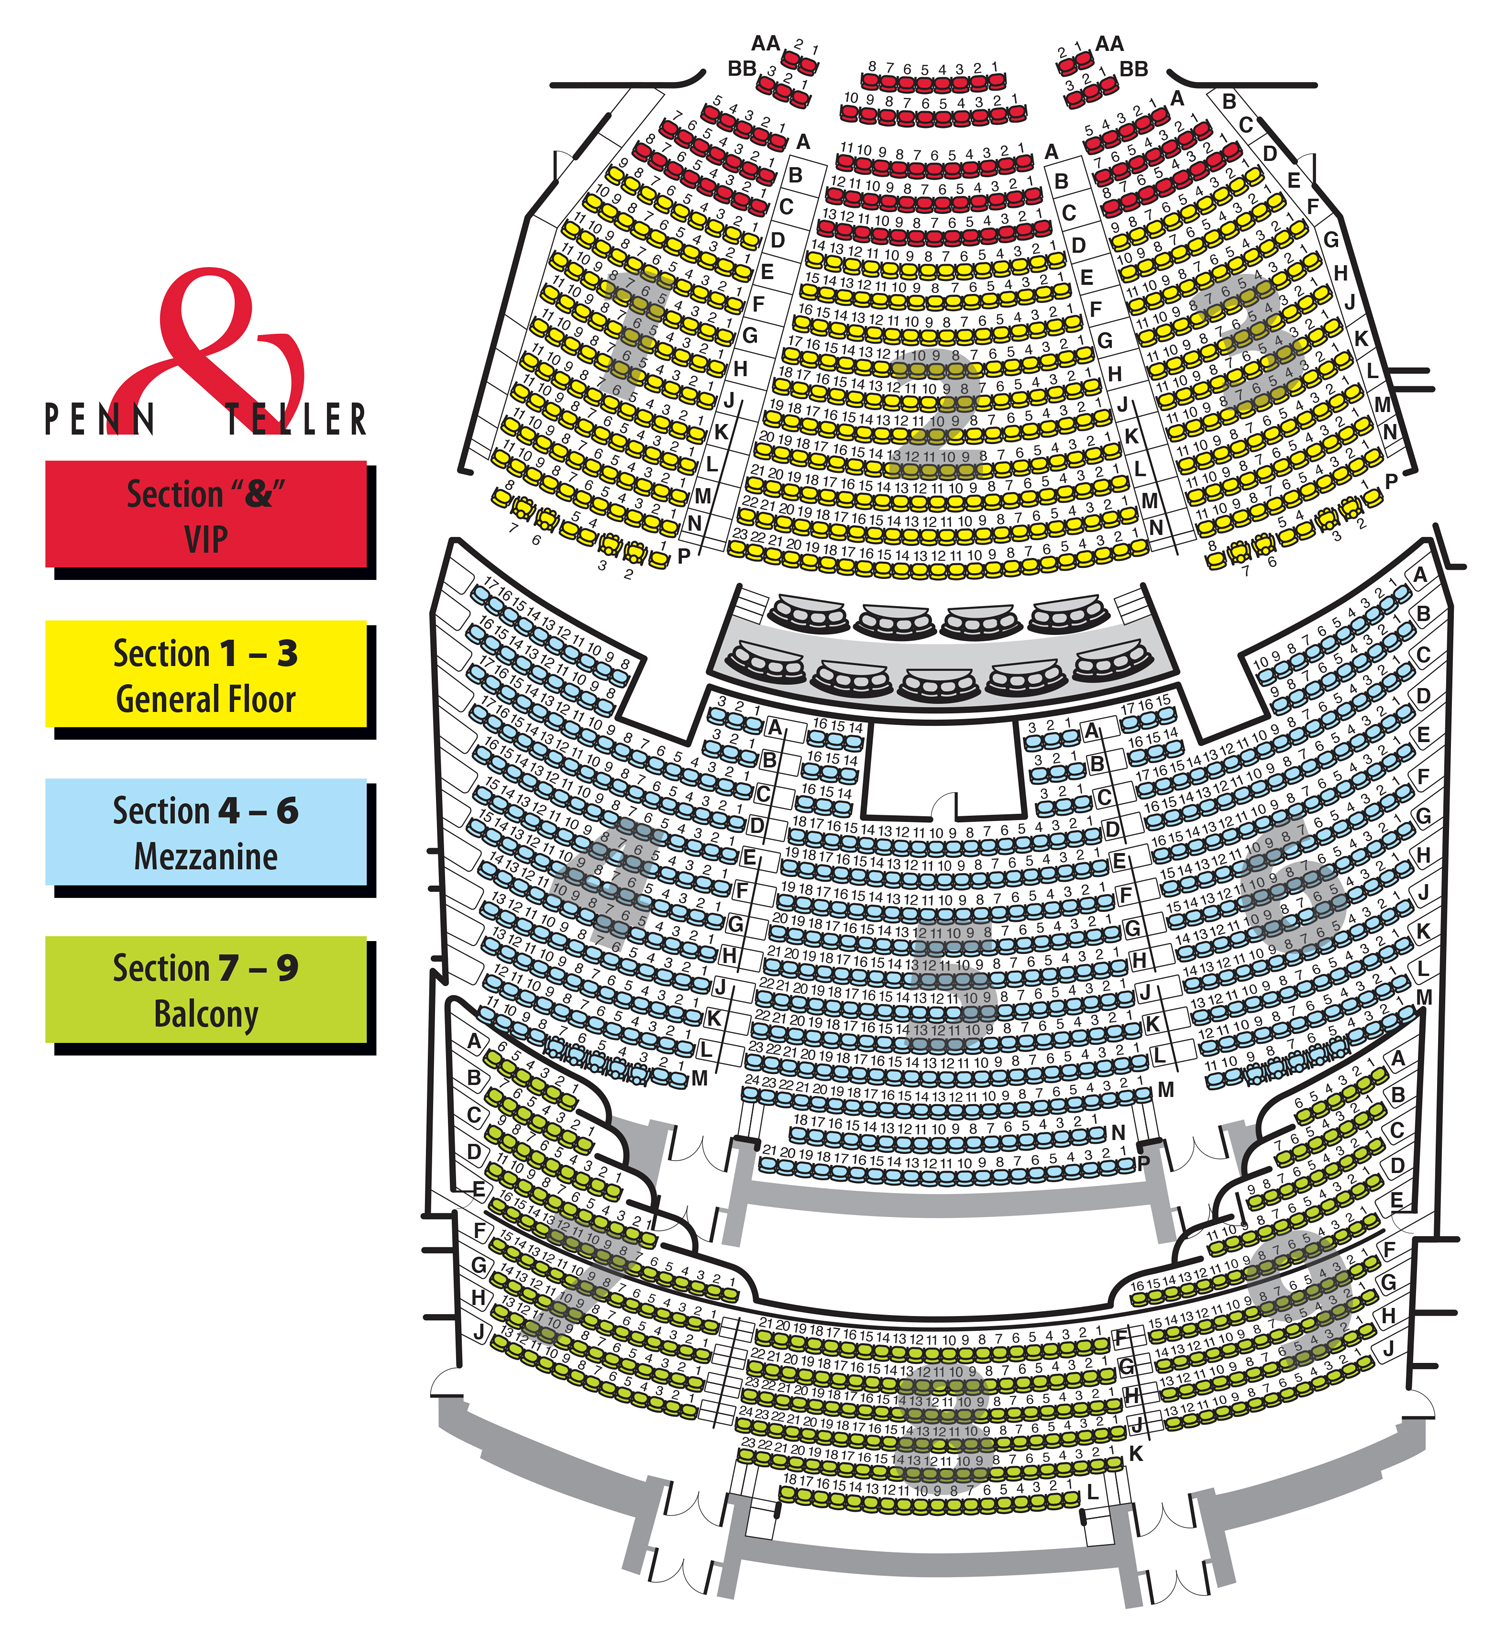 Penn teller theater at the rio las vegas nv tickets schedule